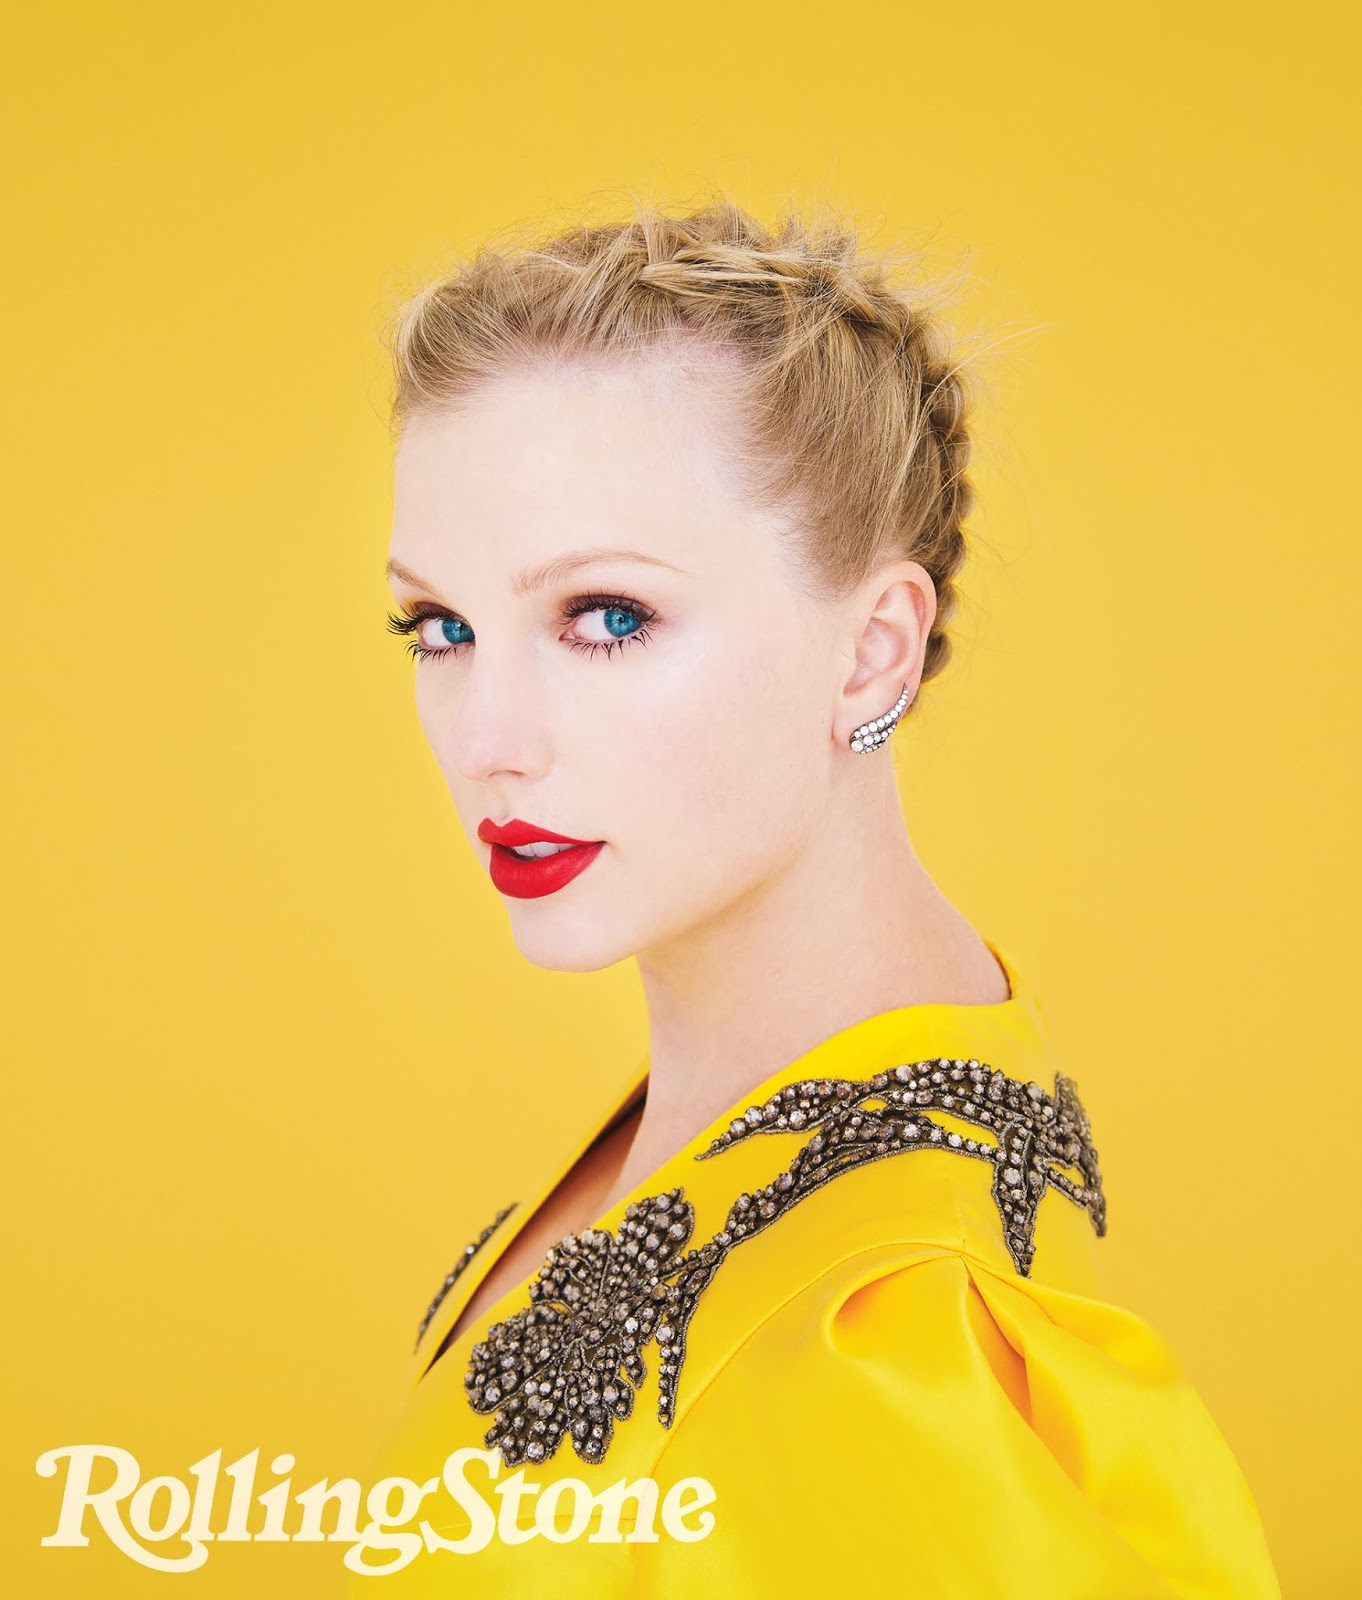 Taylor Swift photographed by Erik Madigan Heck for Rolling Stone. Dress by Erdem. Earrings by Jessica McCormack